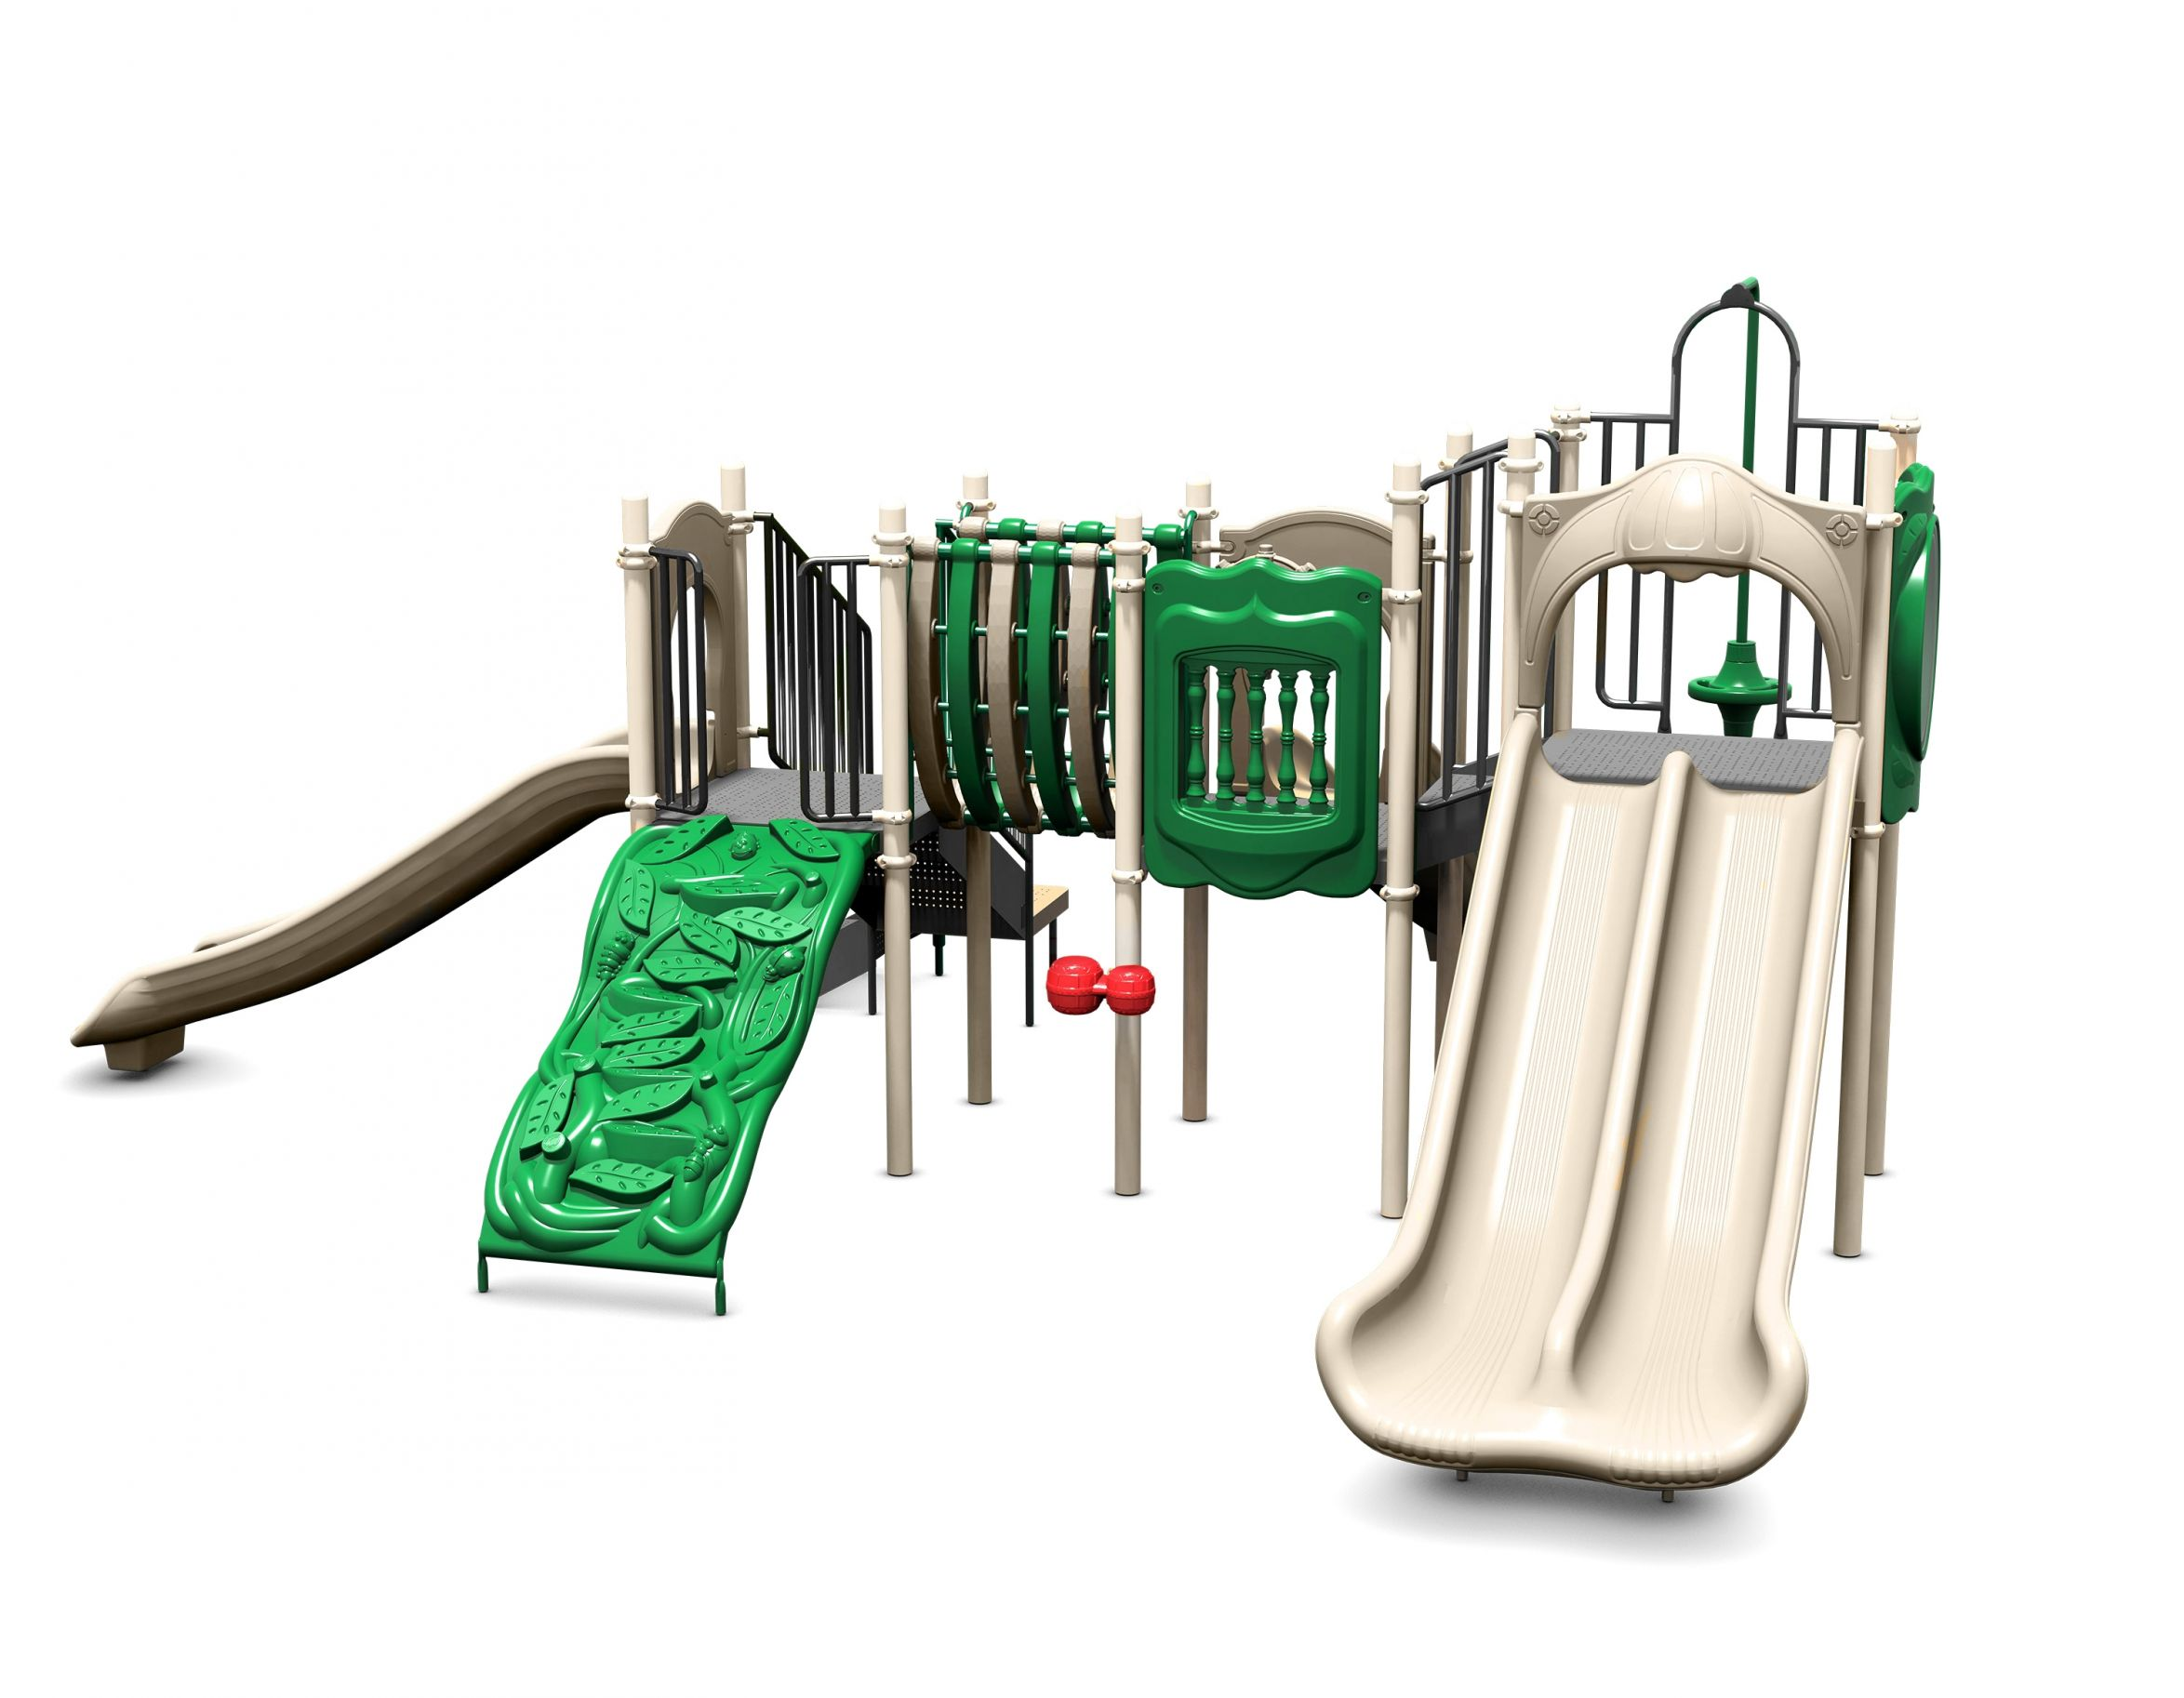 Get High-Quality Playground Equipment at Affordable Prices